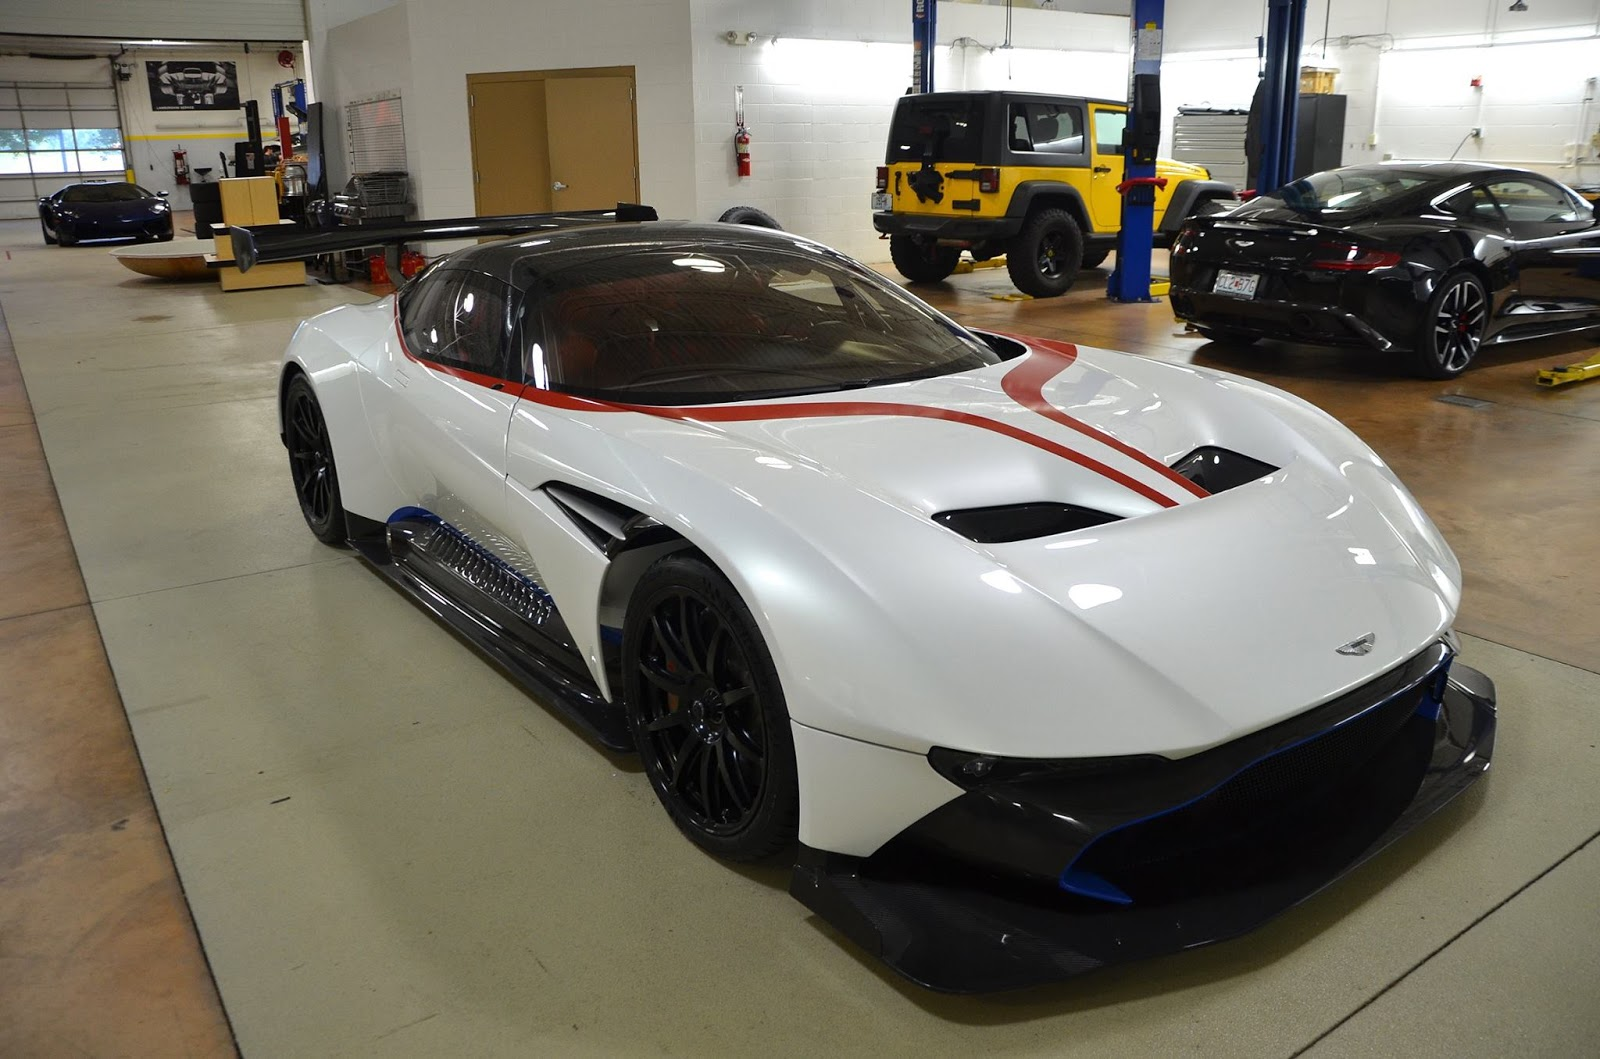 Patriotic Aston Martin Vulcan Lands In The USA